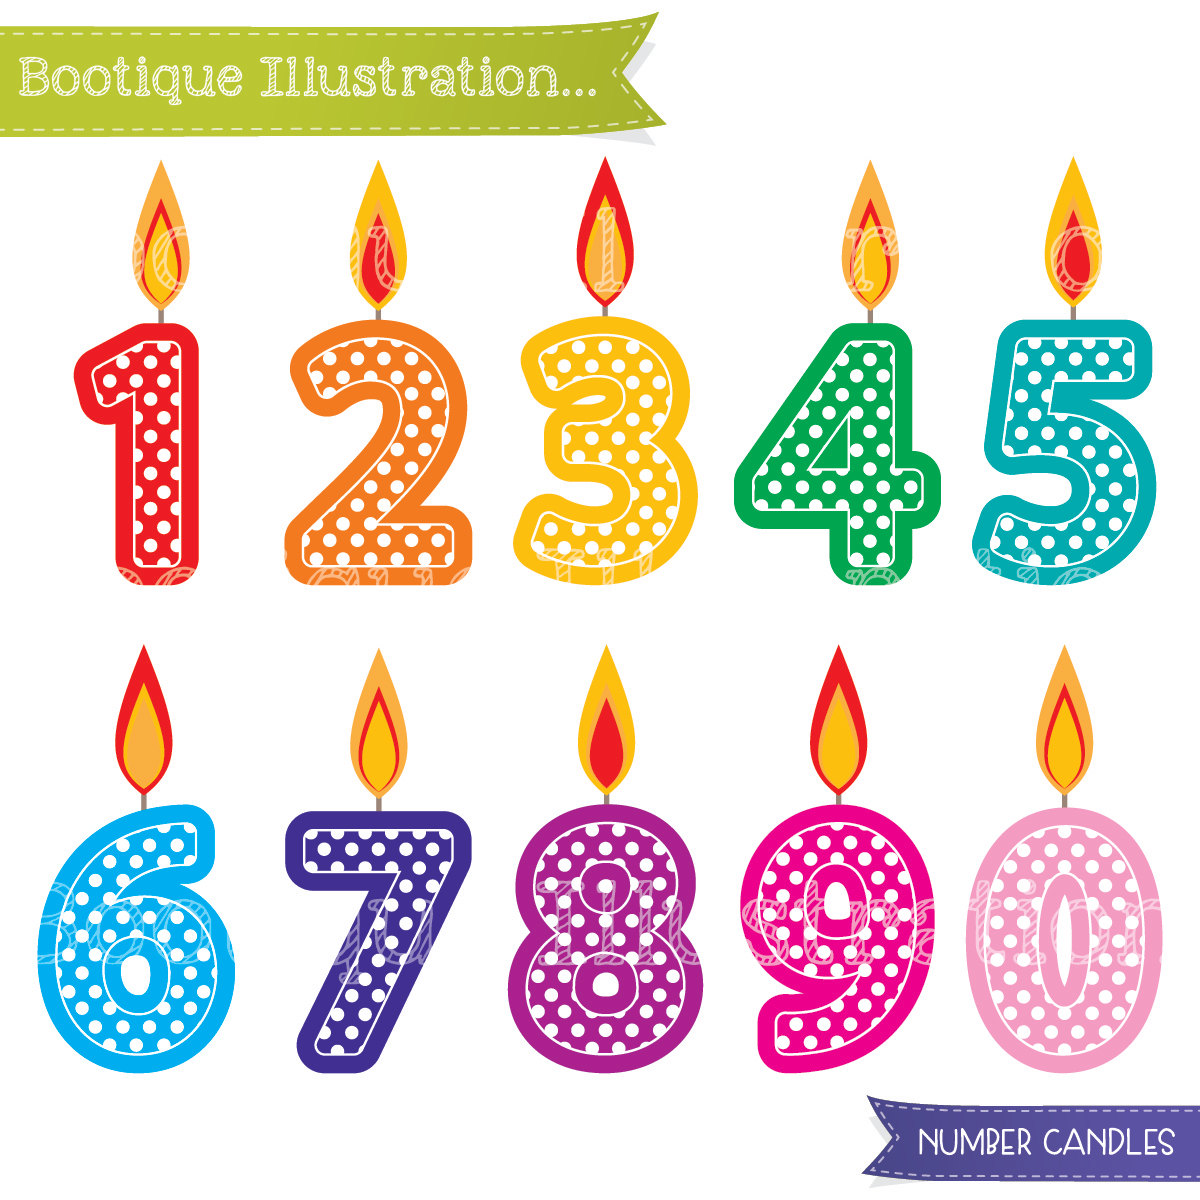 1 birthday candle clipart graphic transparent stock Birthday Clip Art | Boo-tique Illustration Clipart graphic transparent stock